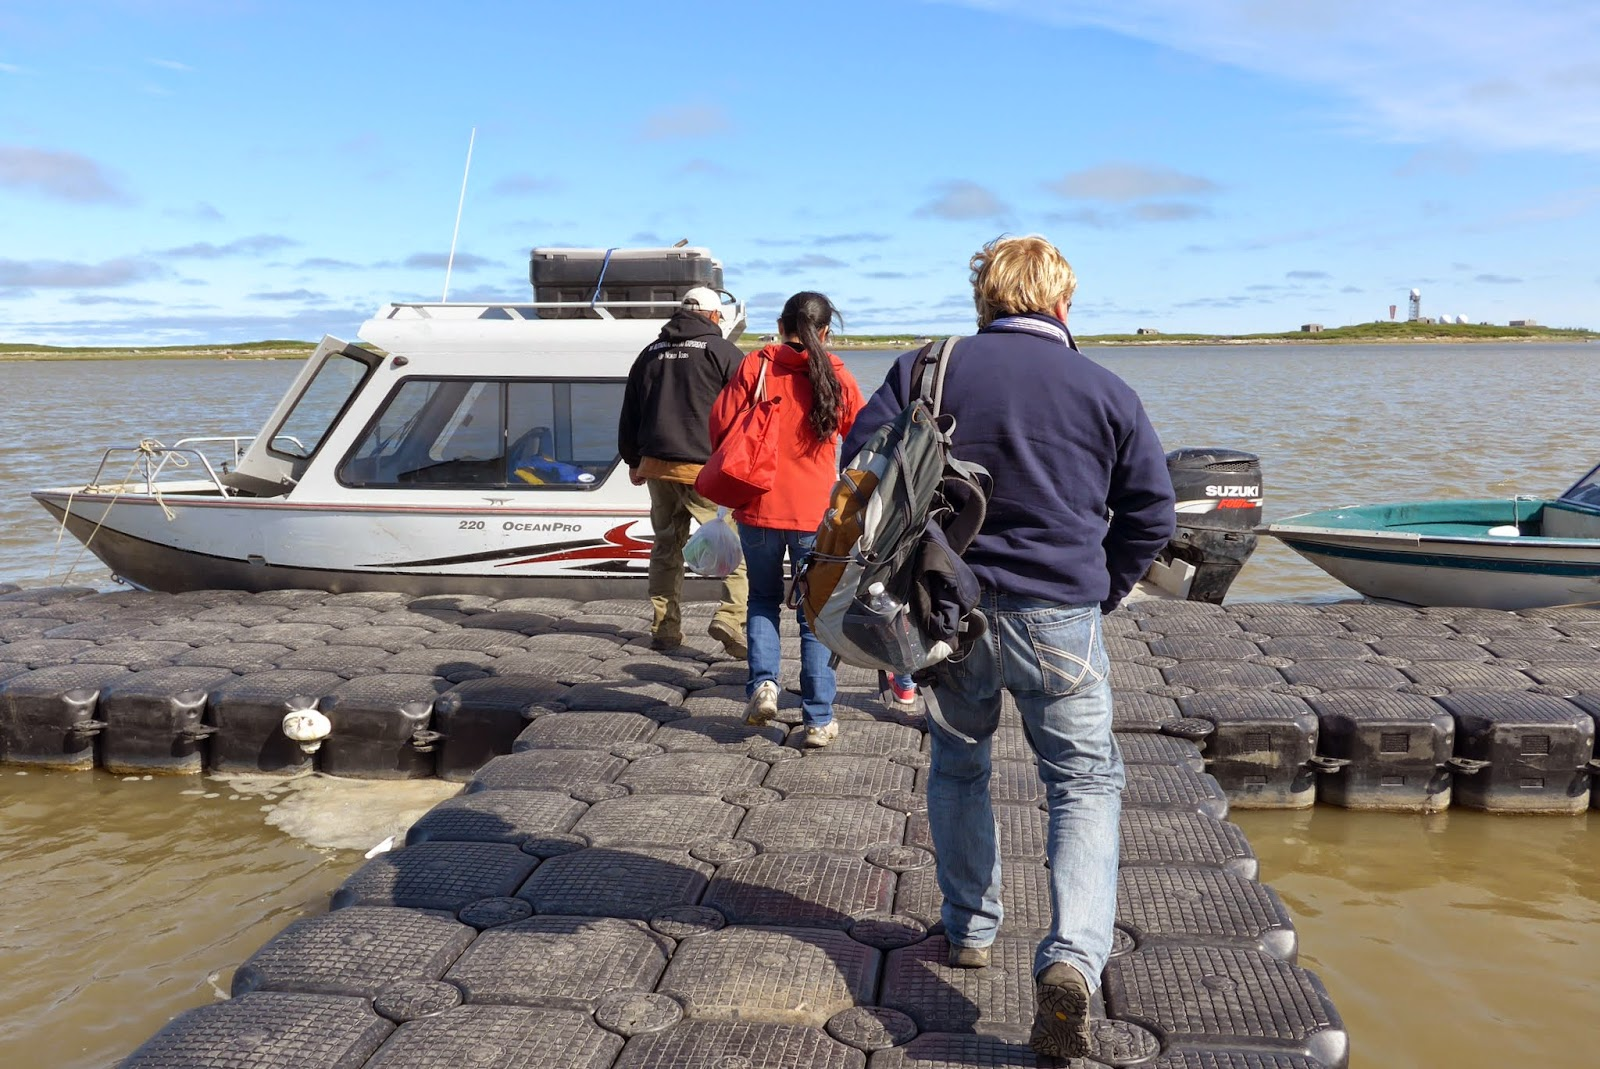 Boarding the boat in Tuktoyaktuk.